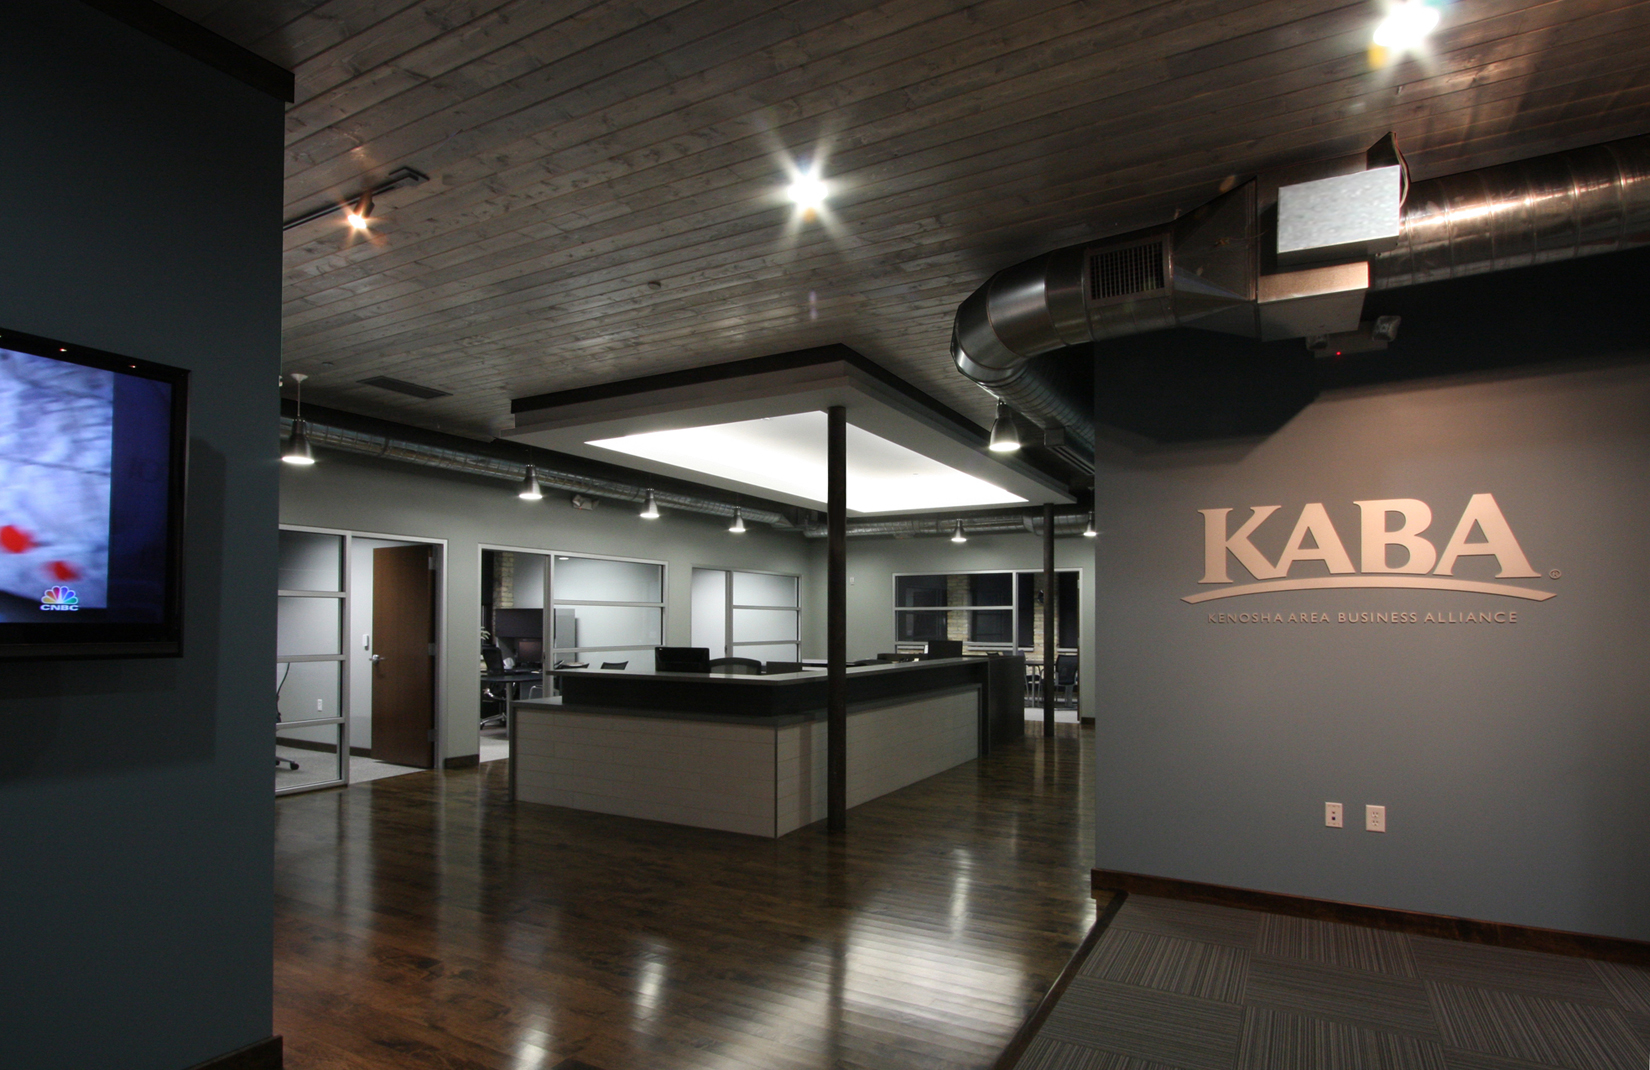 KABA Mixed Use Building    L.Huck Interiors collaborated with the Kenosha Area Business Alliance and a local architect to renovate this mixed use space.